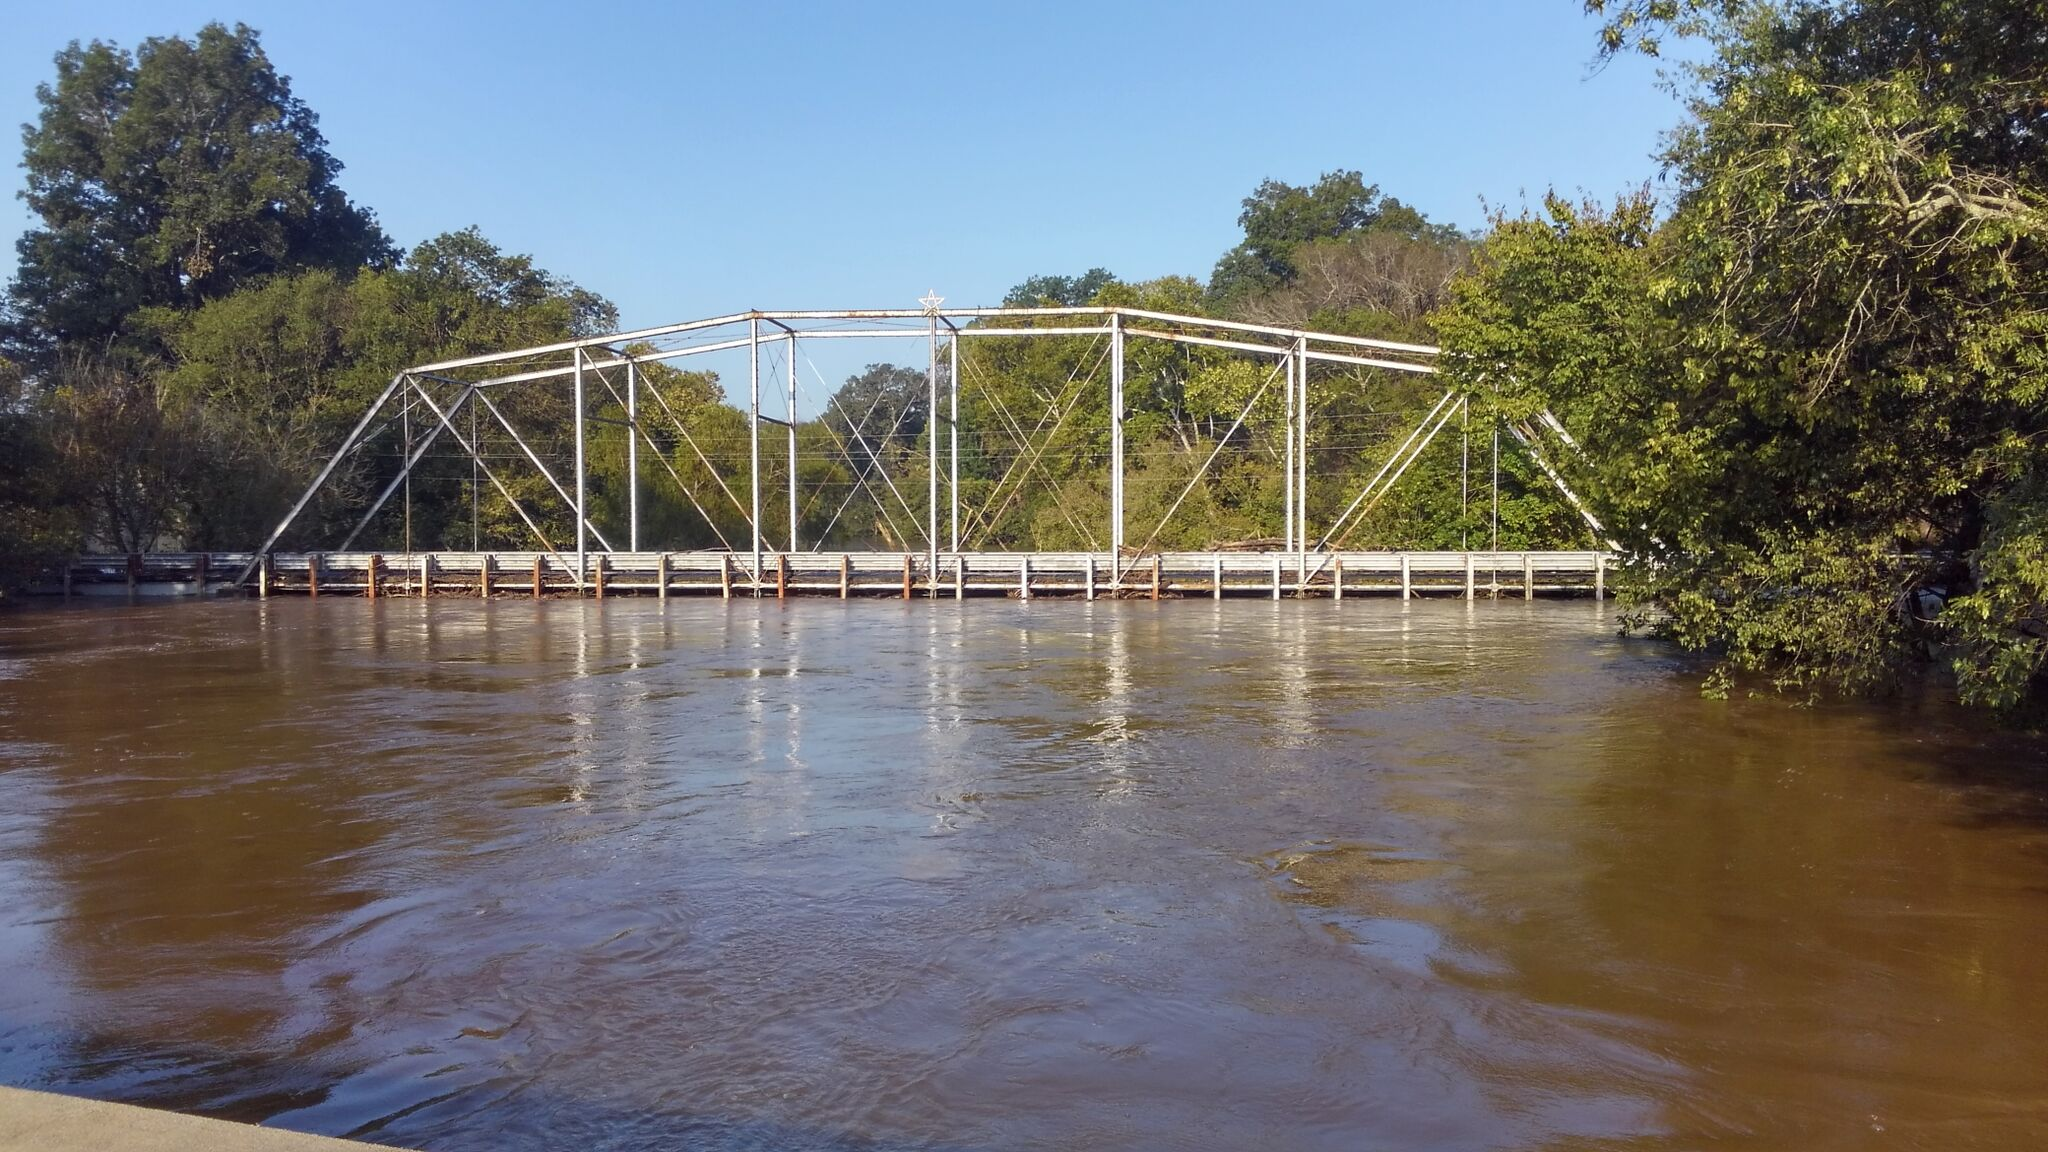 Deep River flooding at Cumnock in September 2018 after Hurricane Florence.